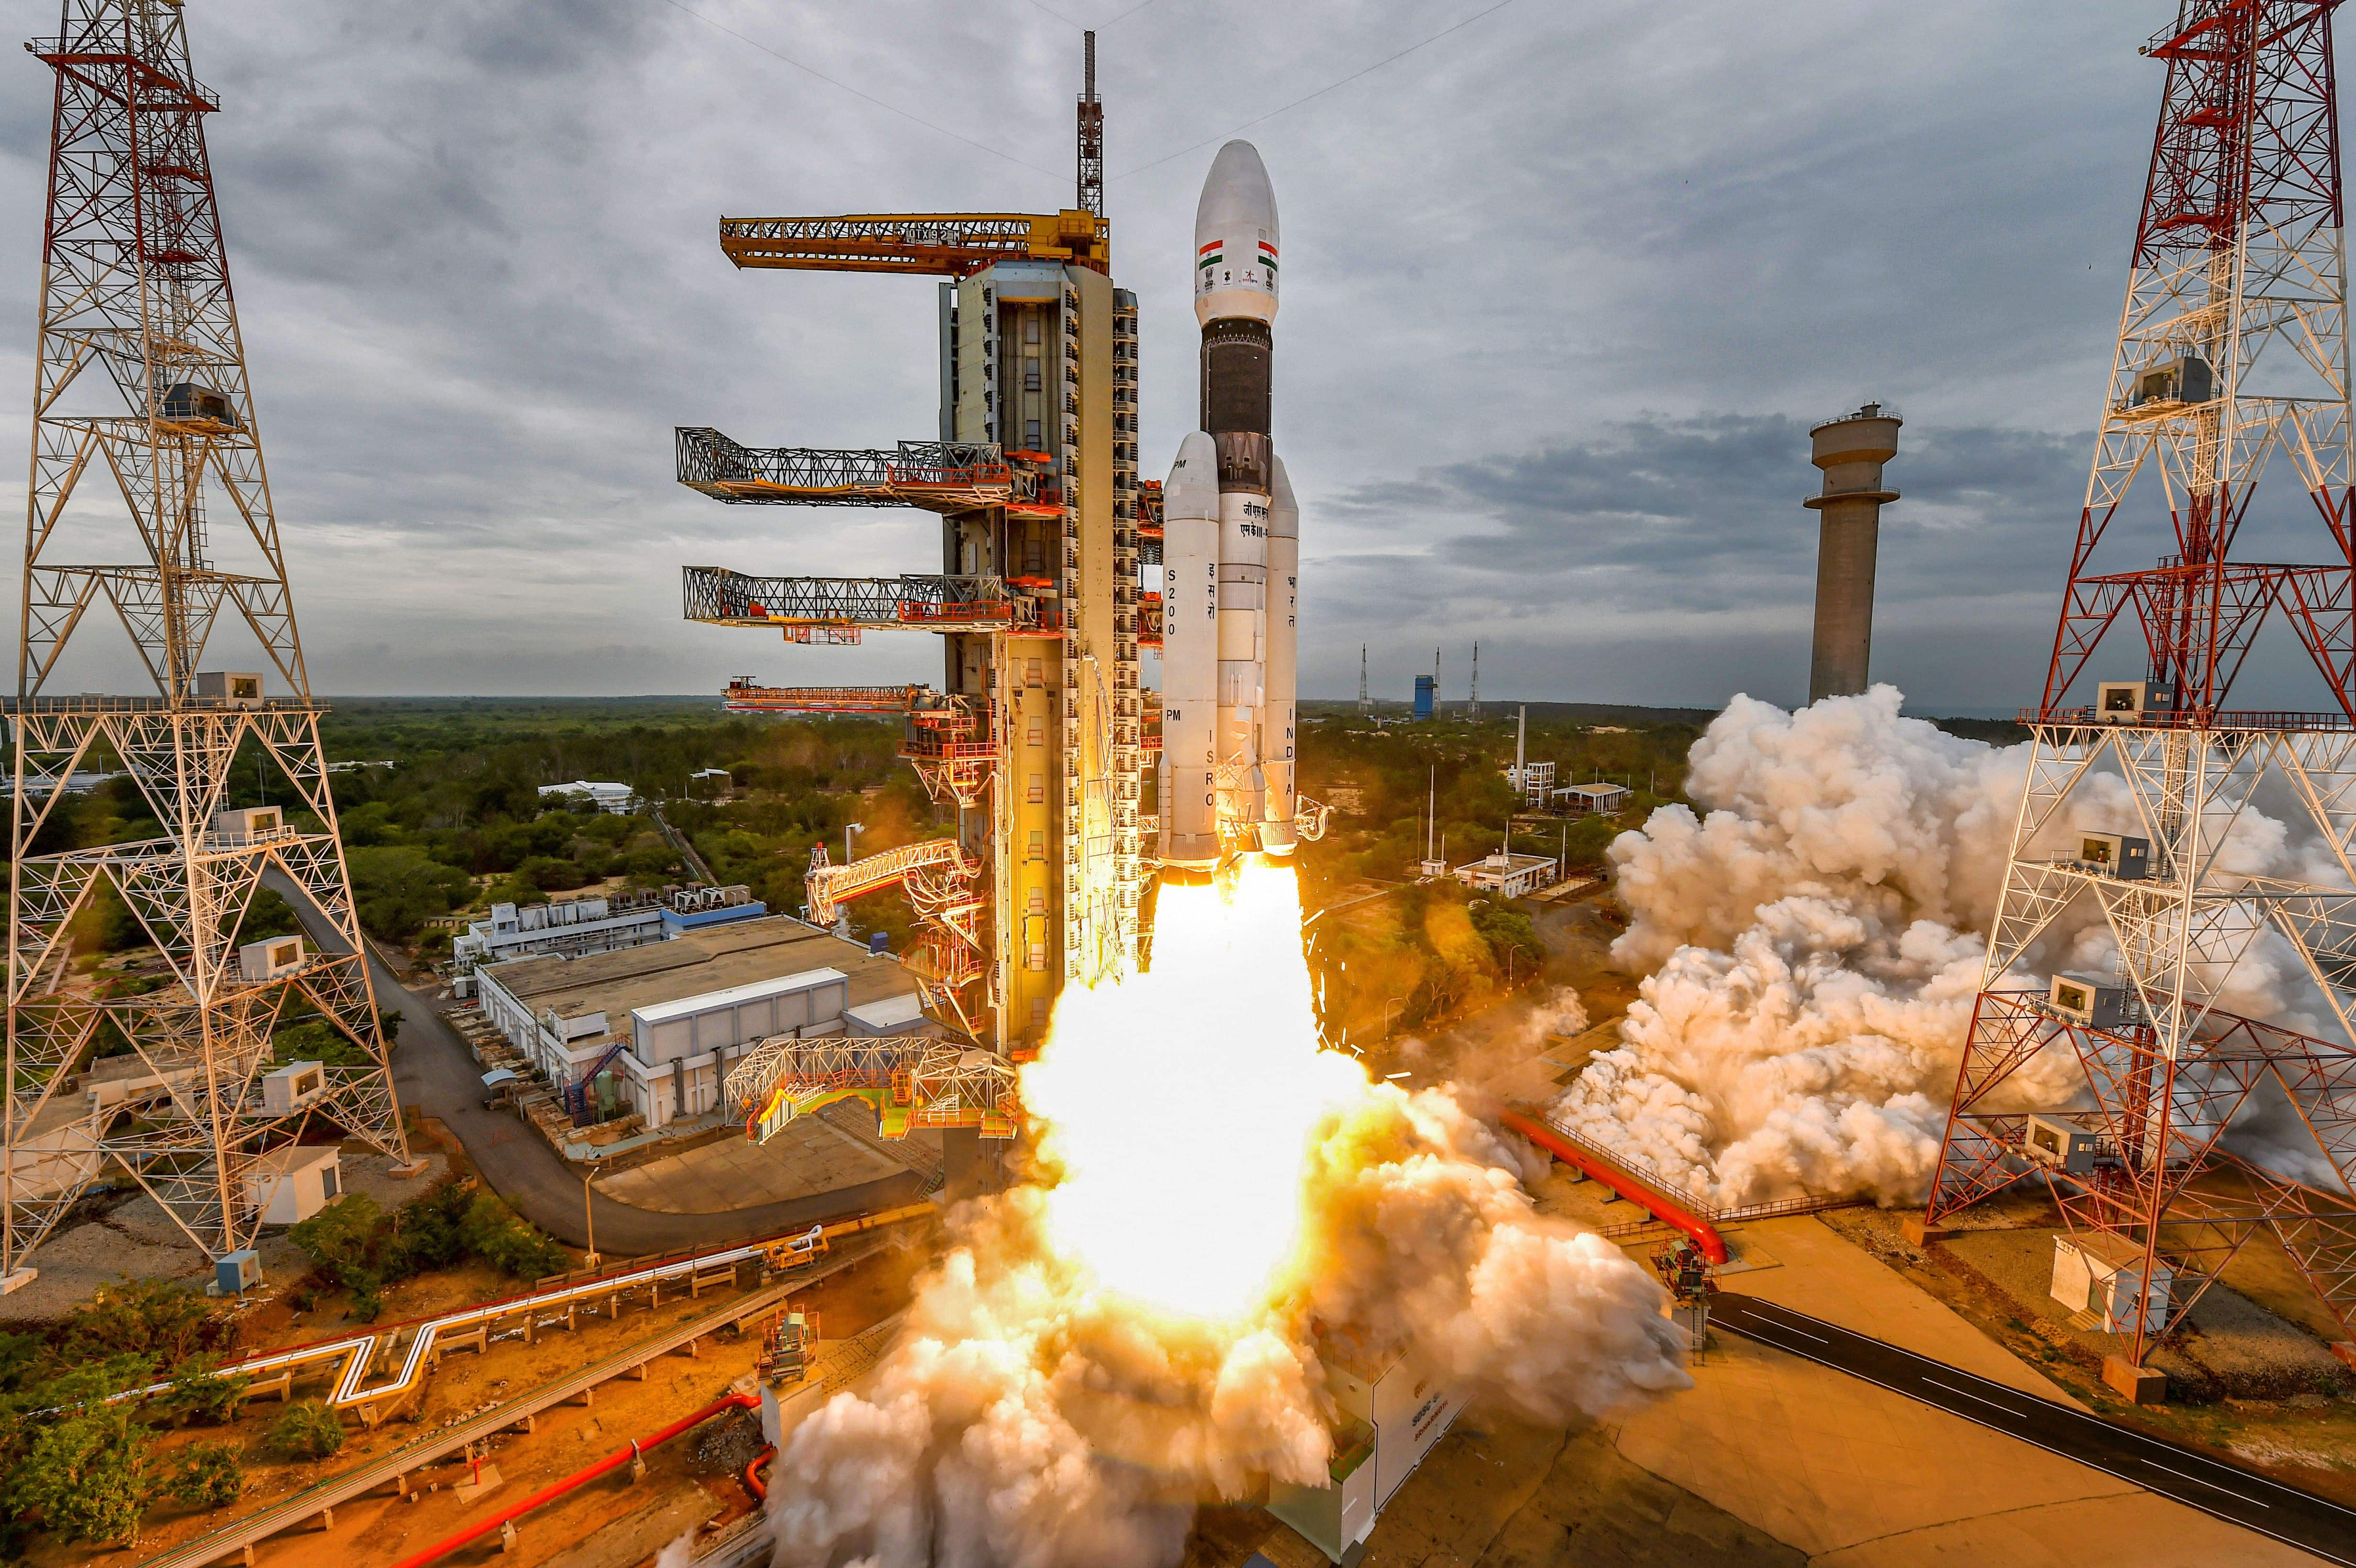 Sriharikota: India's second Moon mission Chandrayaan-2 lifts off onboard GSLV Mk III-M1 launch vehicle from Satish Dhawan Space Center at Sriharikota in Andhra Pradesh. (PTI)